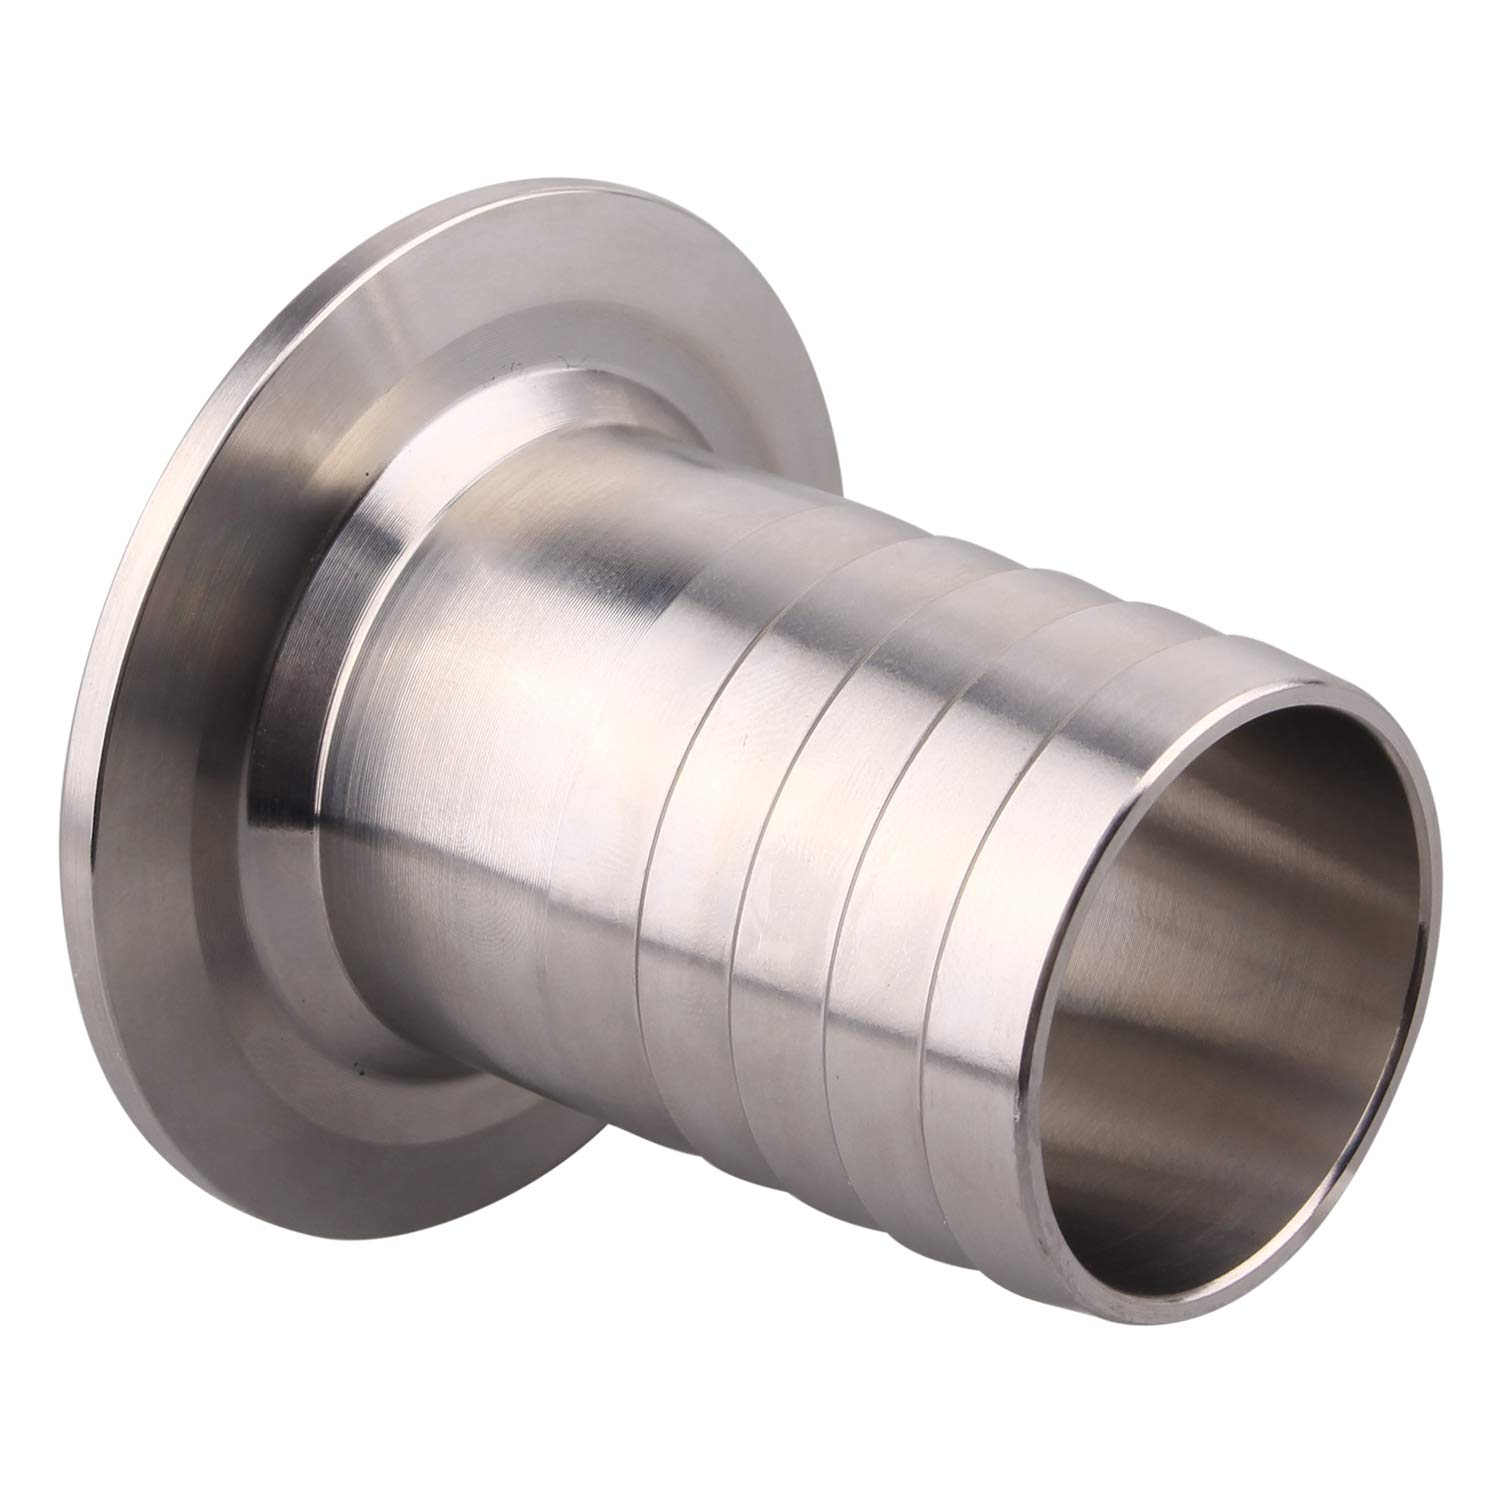 DERNORD 2 Tri Clamp to 1.5 Inch Hose Barbed Adapter SUS304 Sanitary Hose Barb Pipe Fitting 1.5 Inch (2 Inch Tri clamp